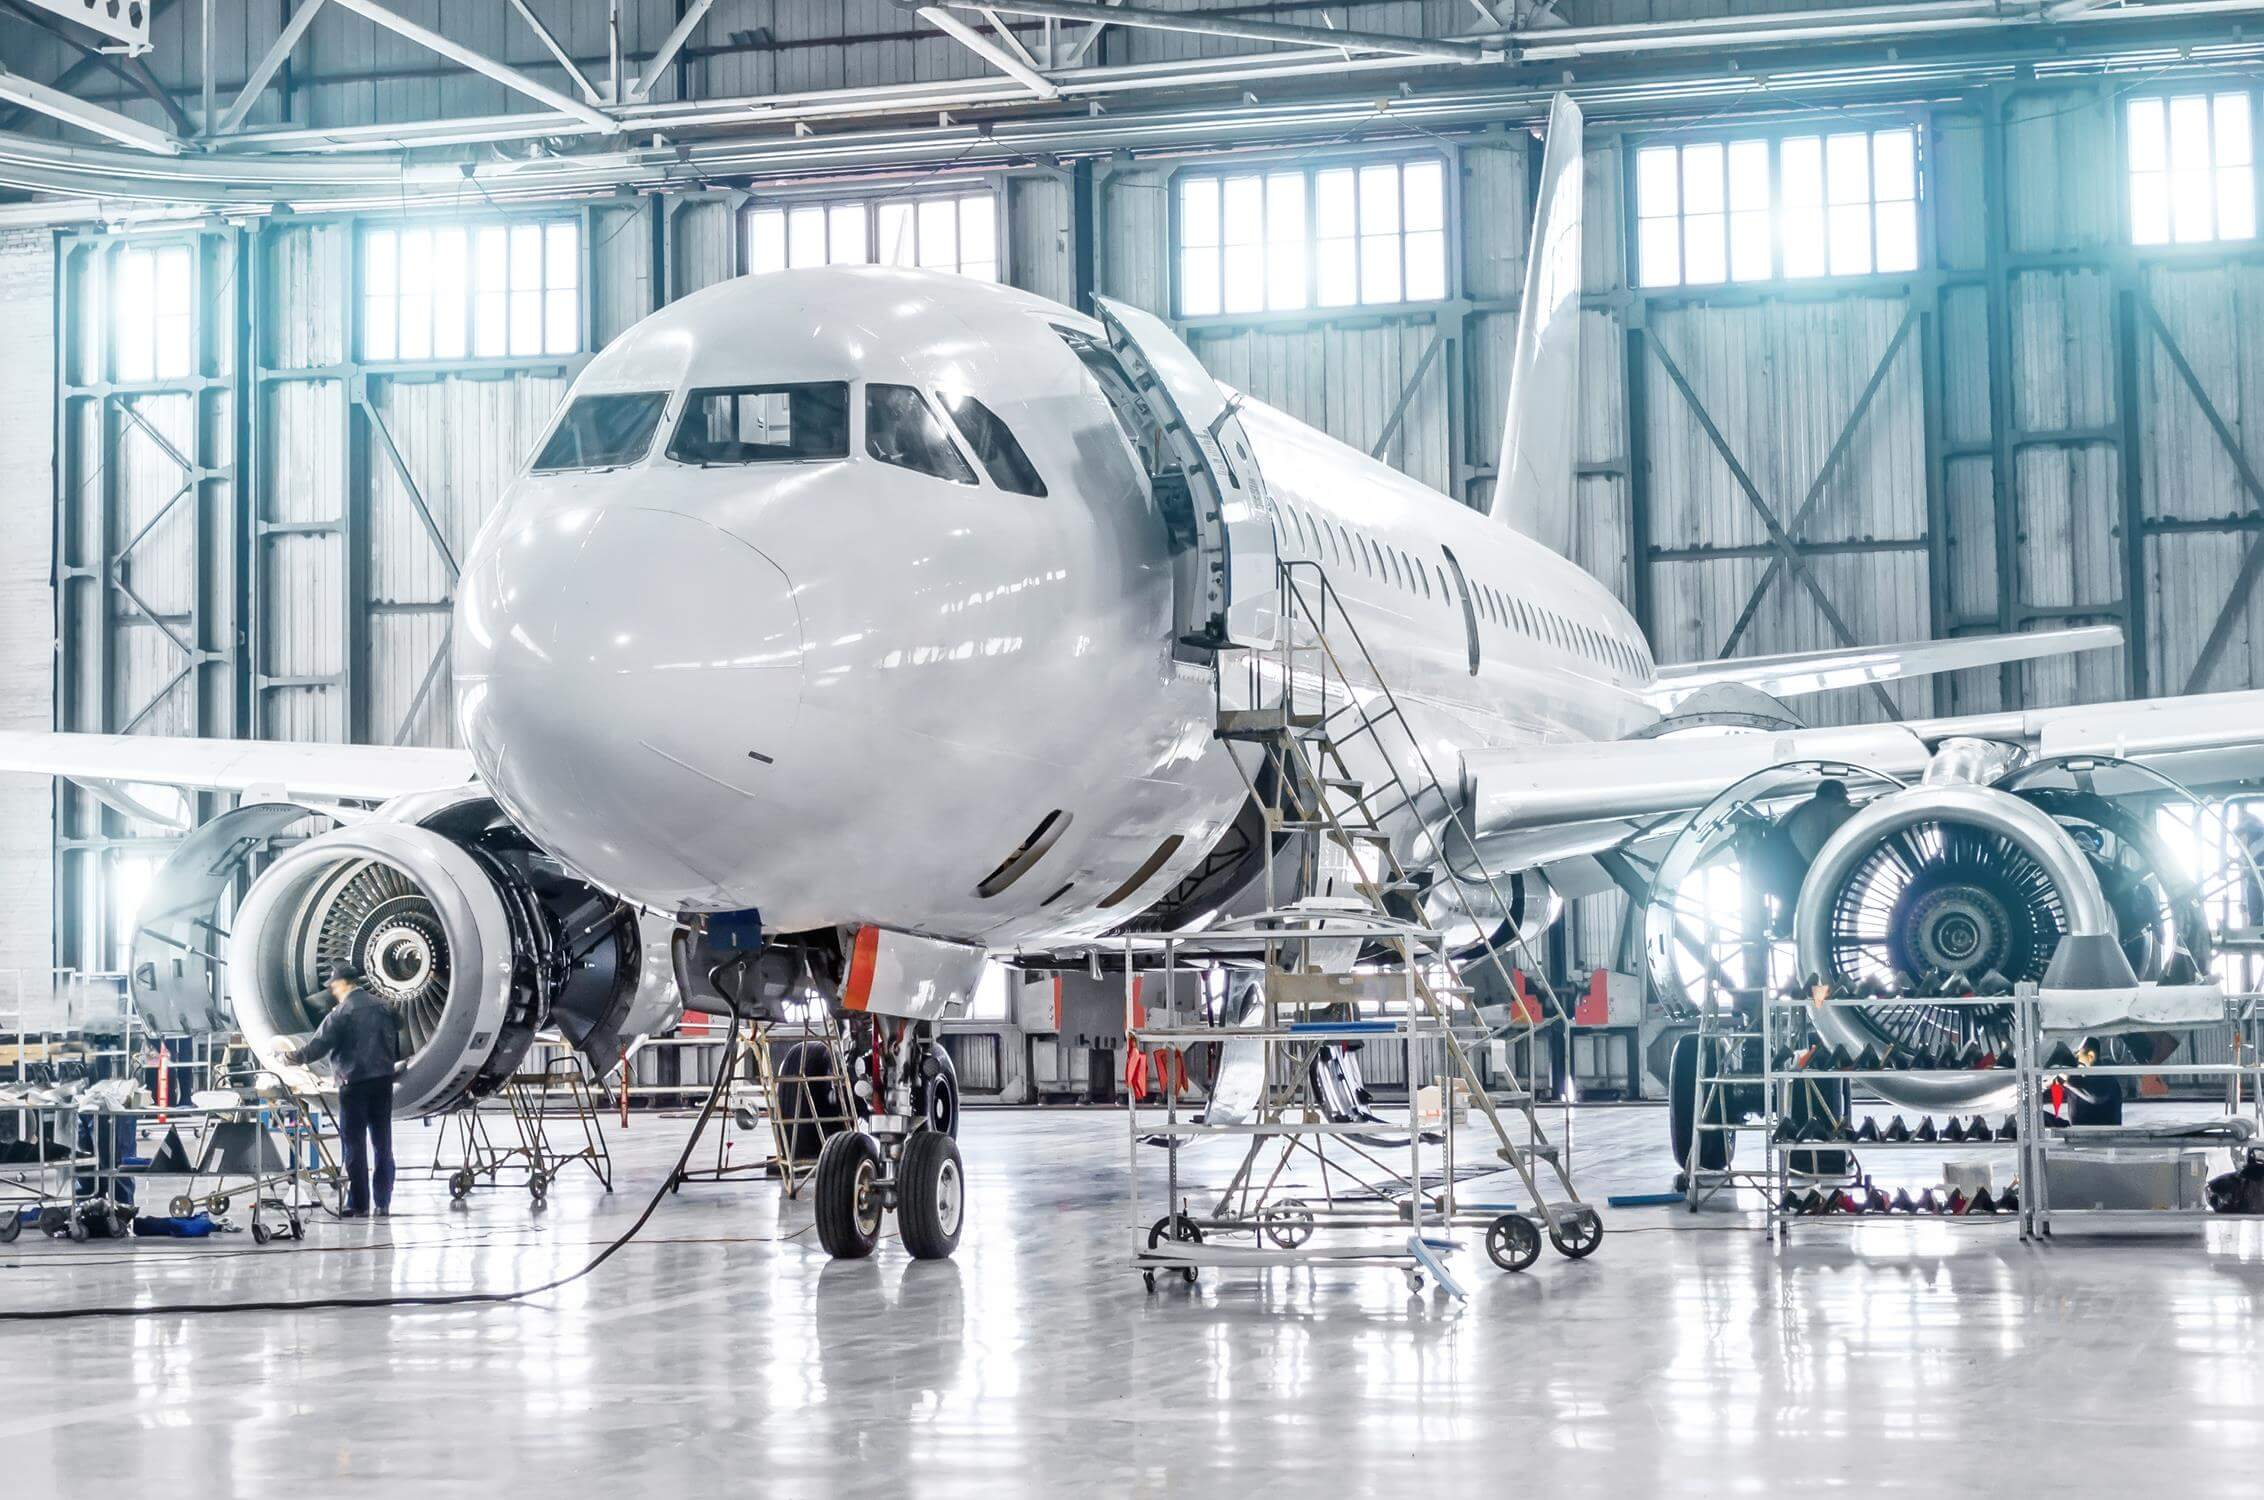 commercial jet plane in a hangar